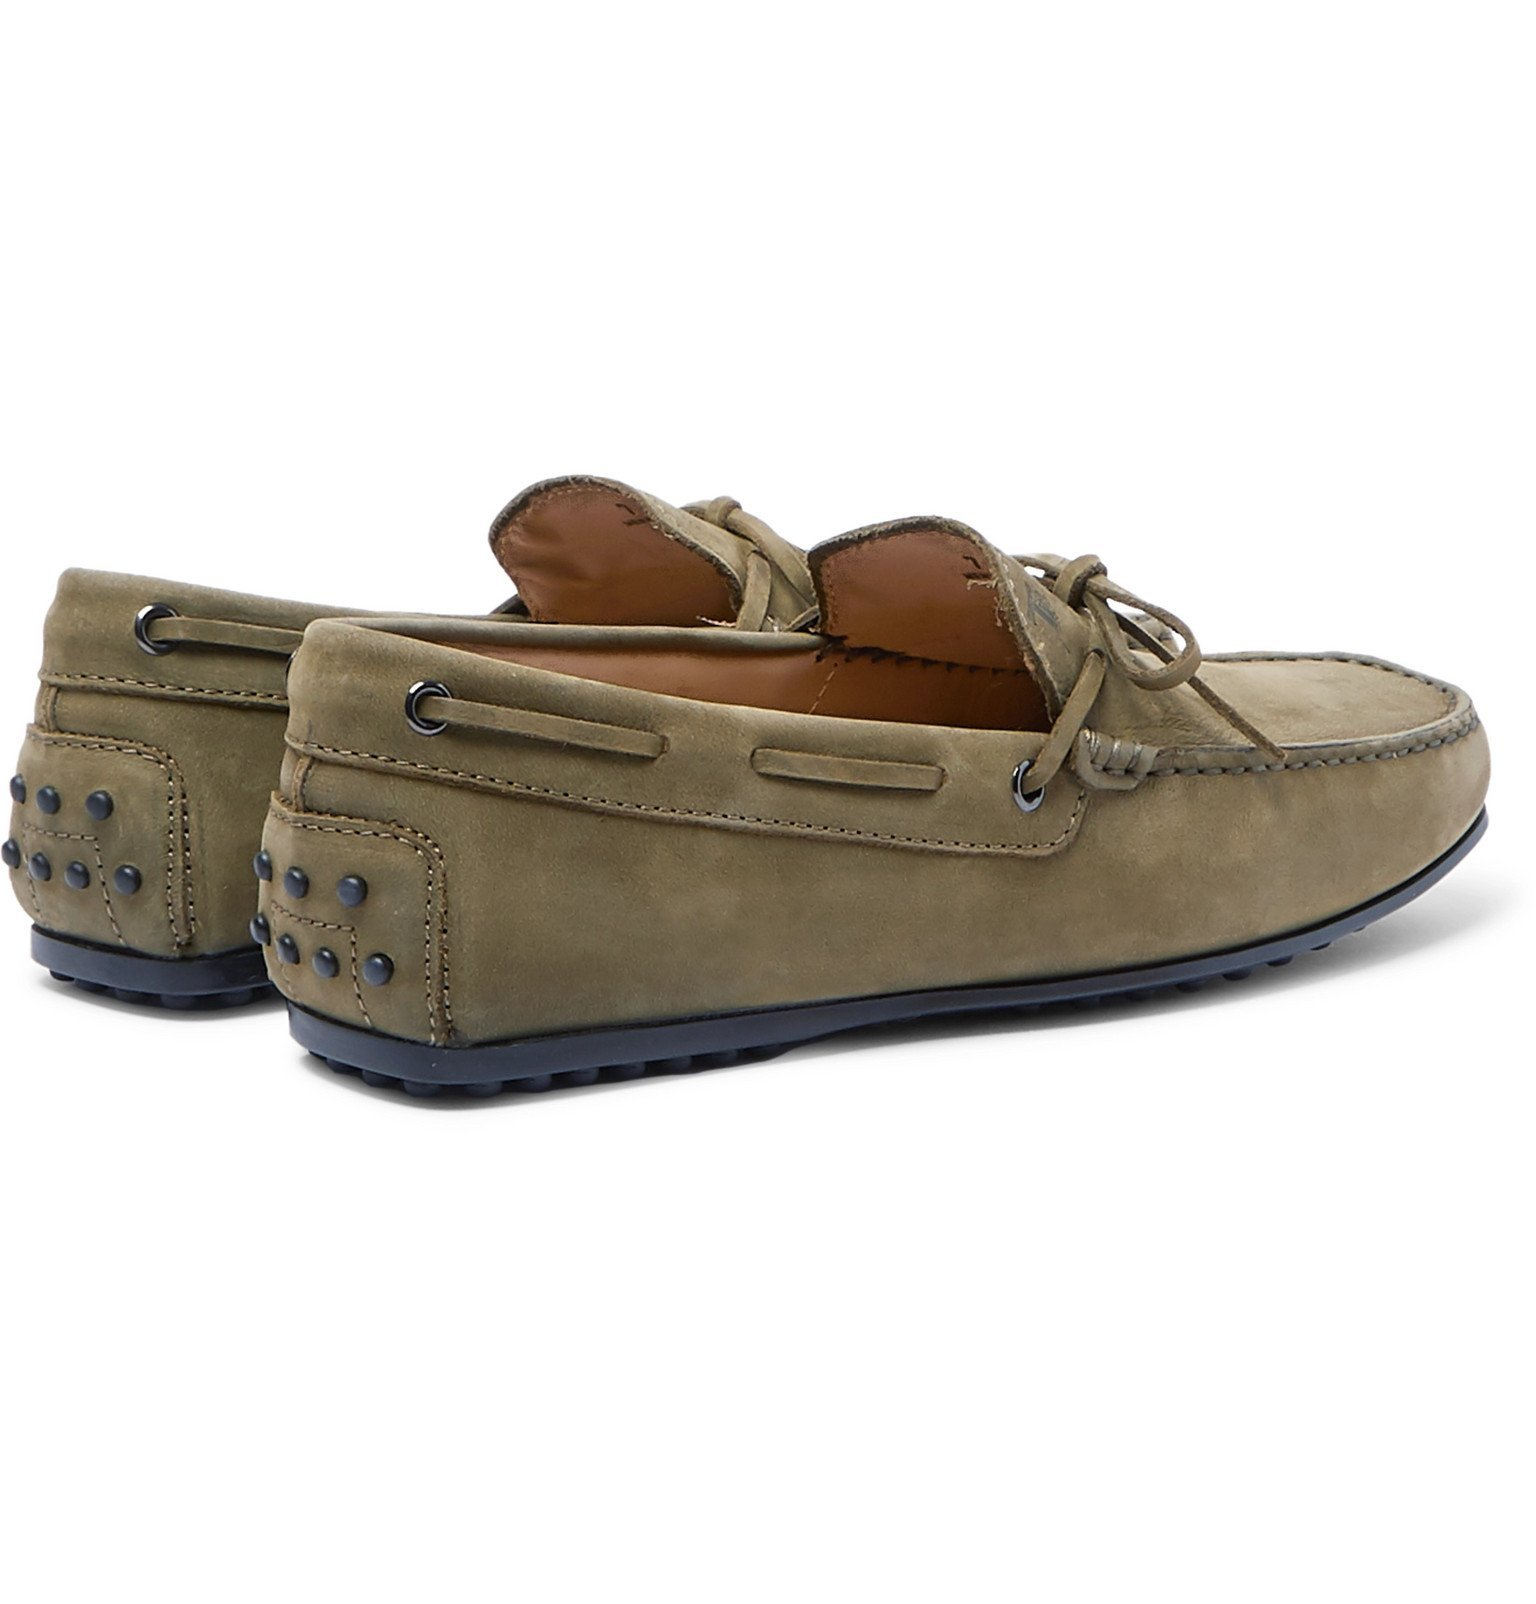 Tod's - City Gommino Nubuck Driving Shoes - Green